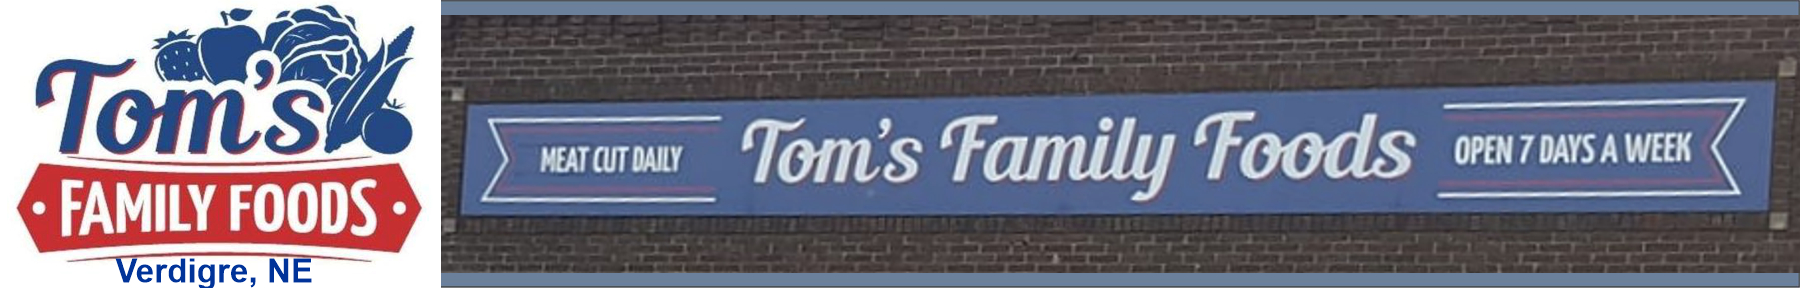 Tom's Family Foods